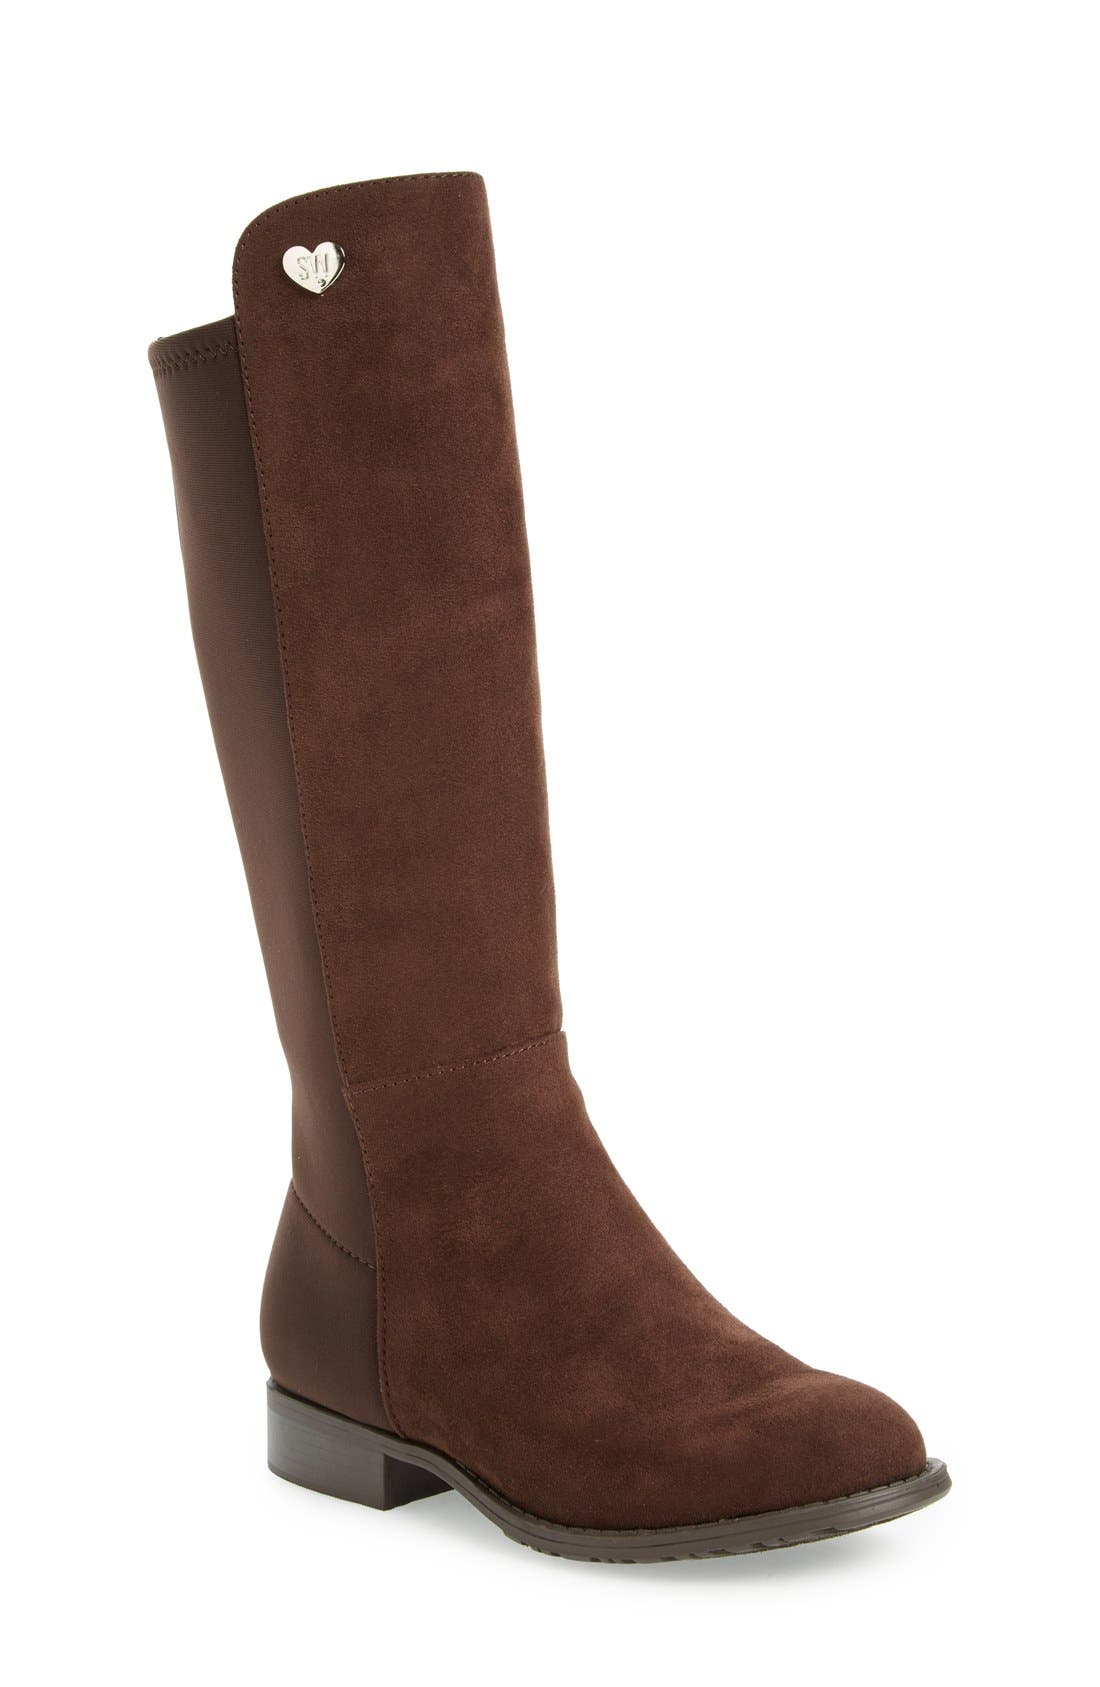 '50/50' Stretch Back Riding Boot,                             Main thumbnail 1, color,                             Brown Leather